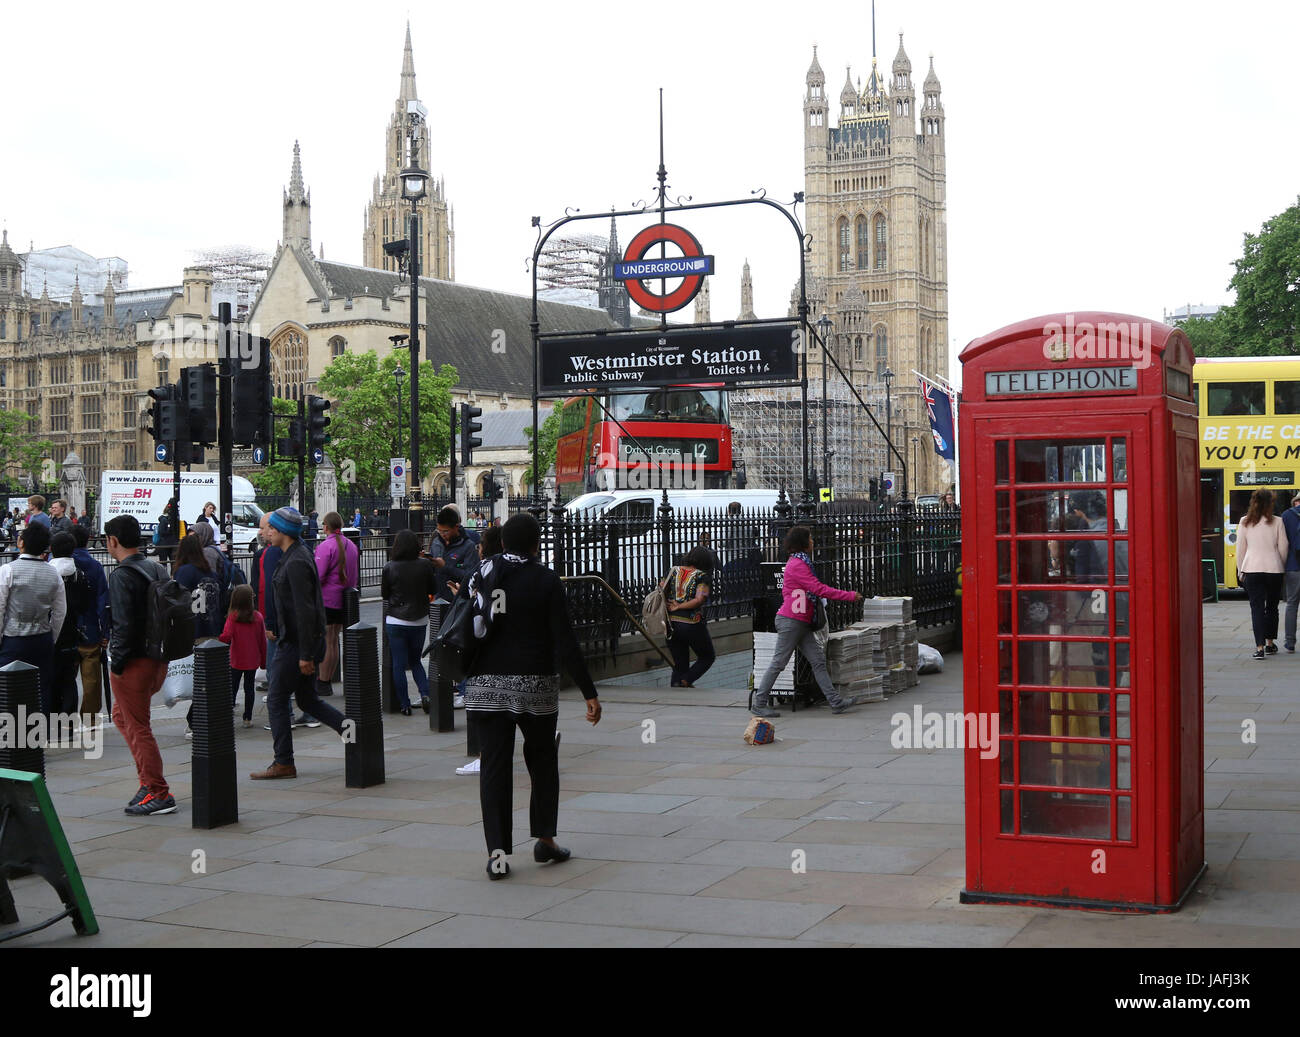 June 5, 2017 - Entrance to Westminster Underground station showing a famous London Red Telephone box - Stock Image